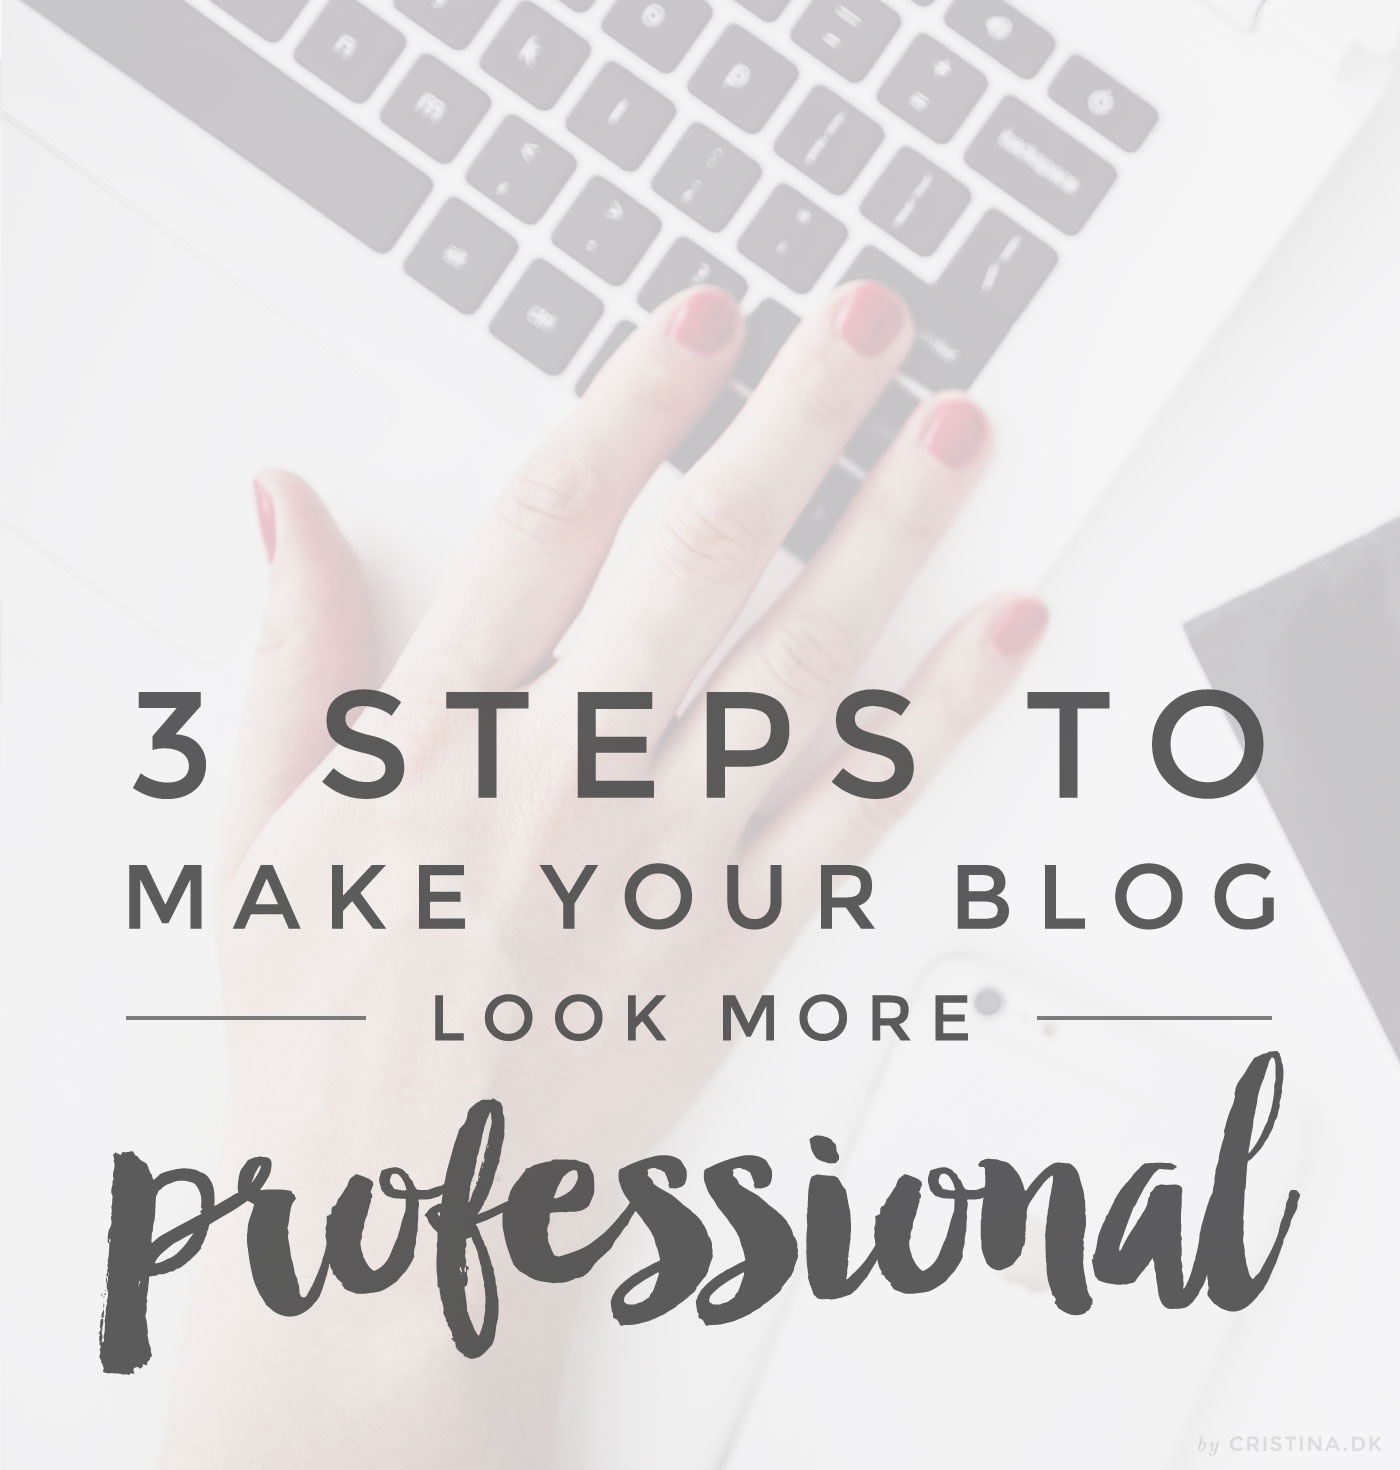 3 steps to a more professional blog